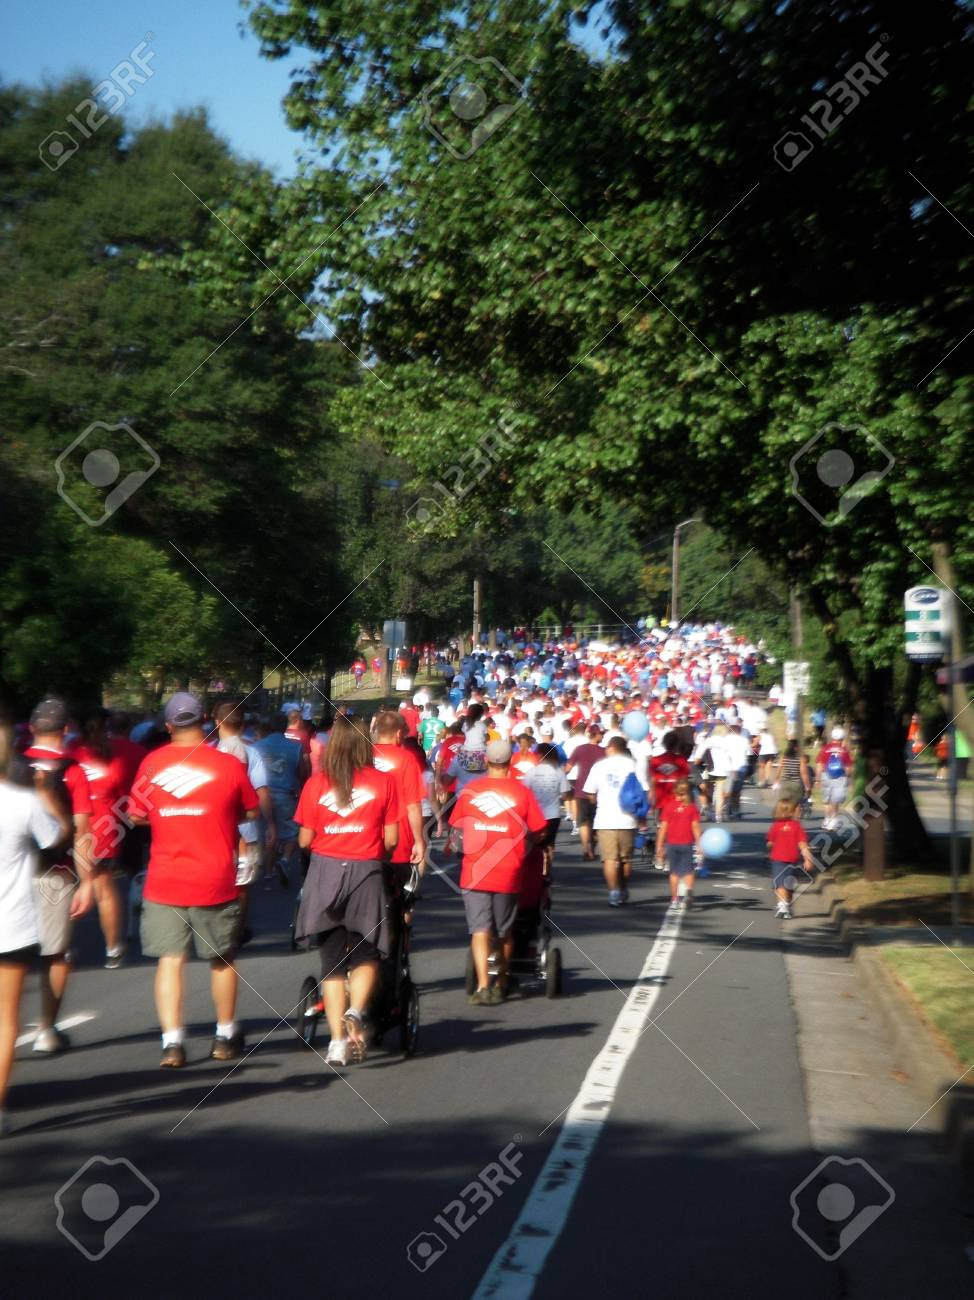 September 25, 2010 - Charlotte, NC - Charlotte Heart Walk participants enjoying the perfect weather to walk for a good cause Stock Photo - 7895921